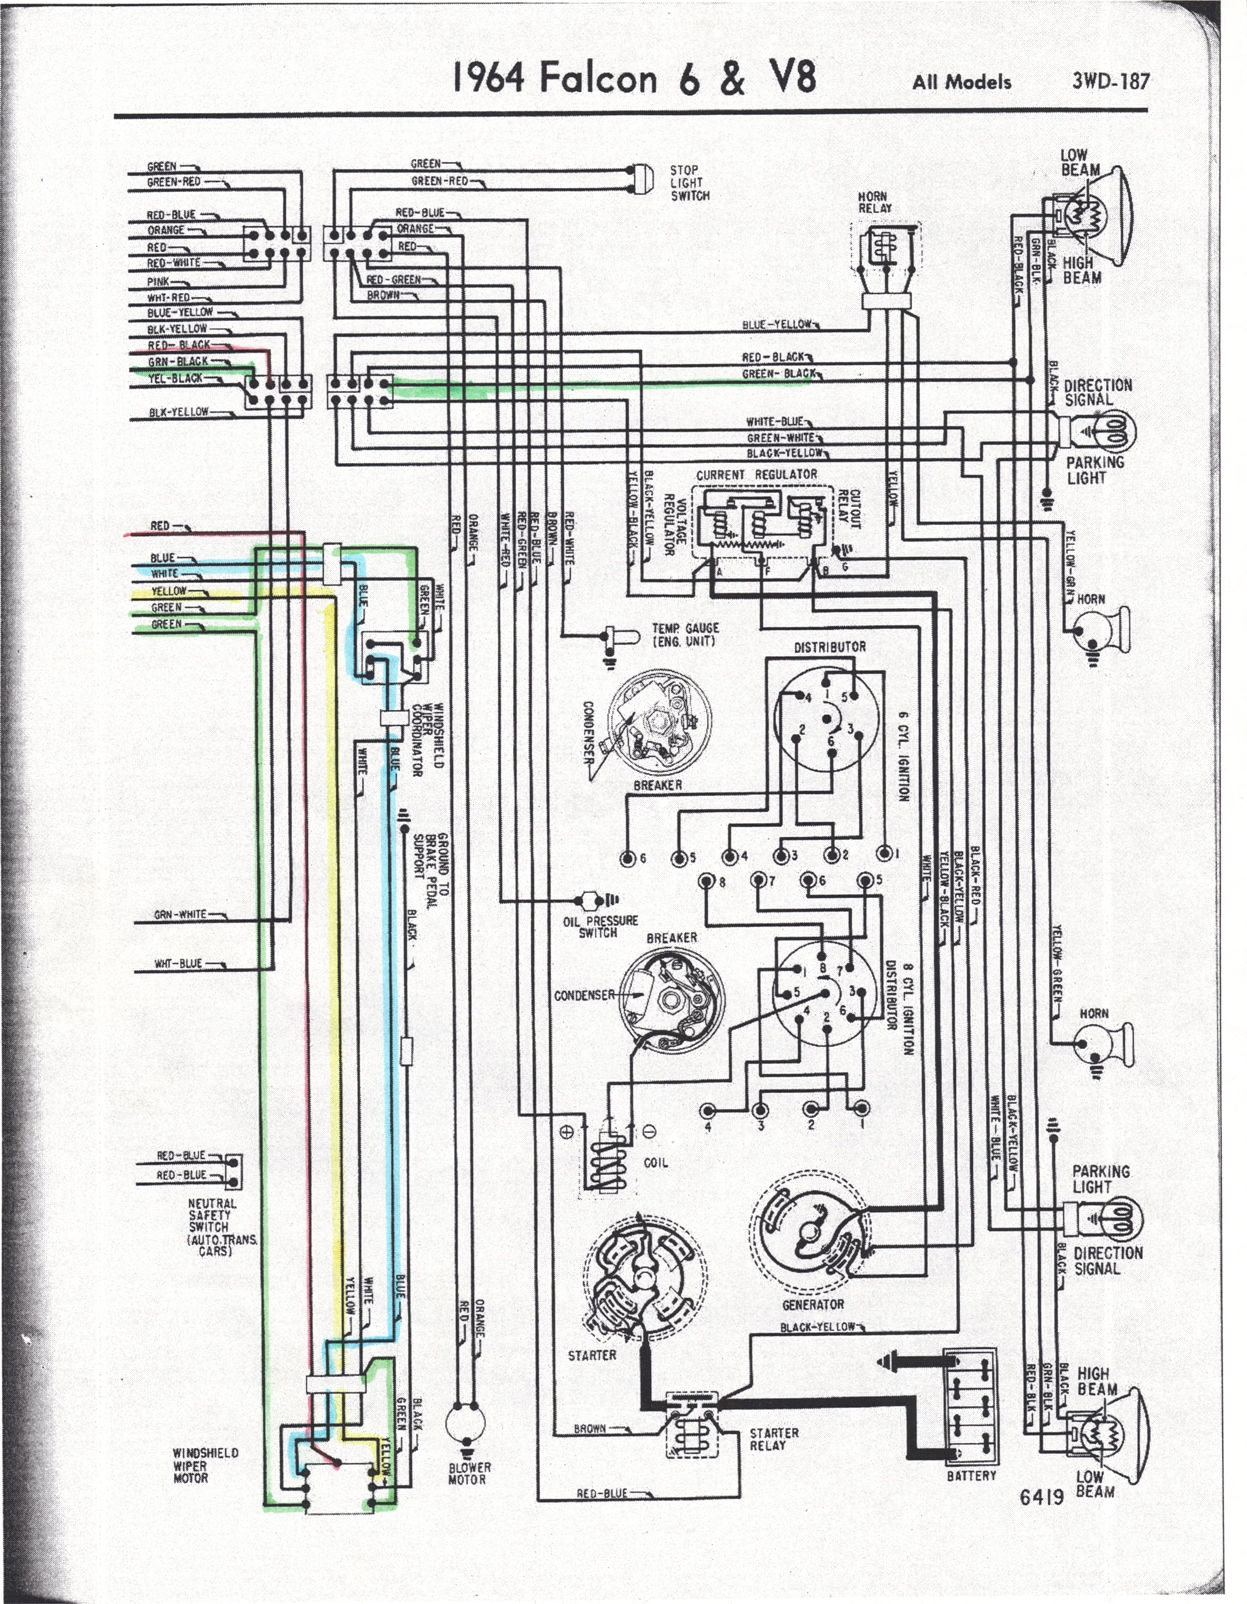 ford ranchero wiring diagrams archive of automotive wiring diagram \u2022 1966 chrysler newport wiring diagram falcon diagrams rh wiring wizard com 1964 ford ranchero wiring diagram 1963 ford ranchero wiring diagram